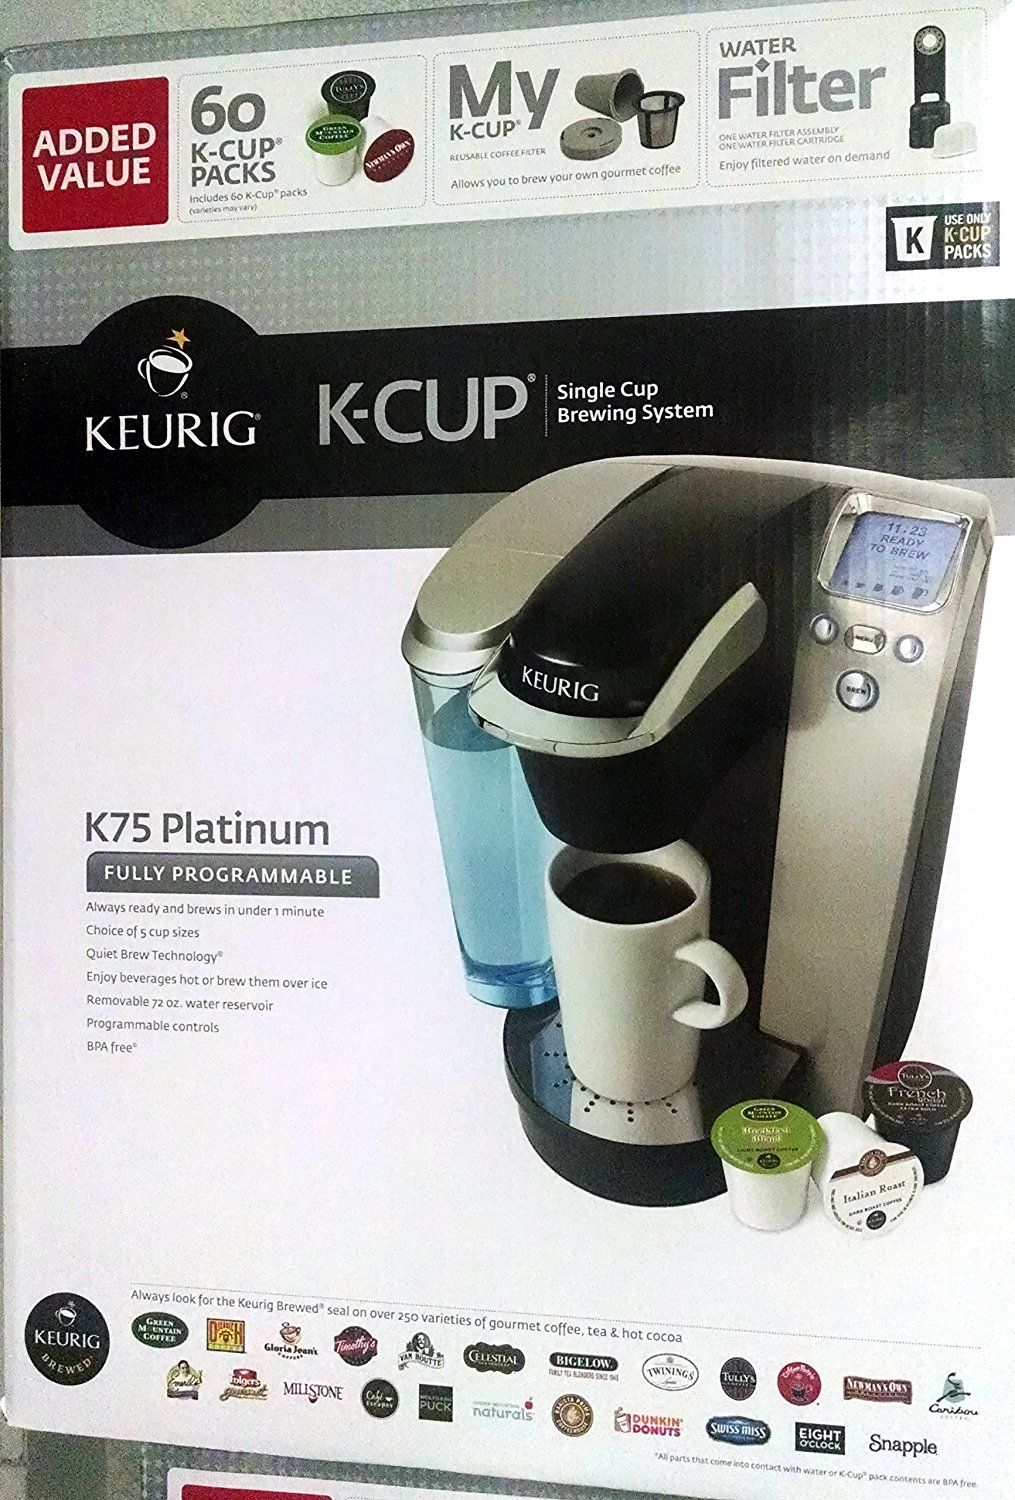 Keurig K75 Platinum Single Cup Home Brewing System With Water